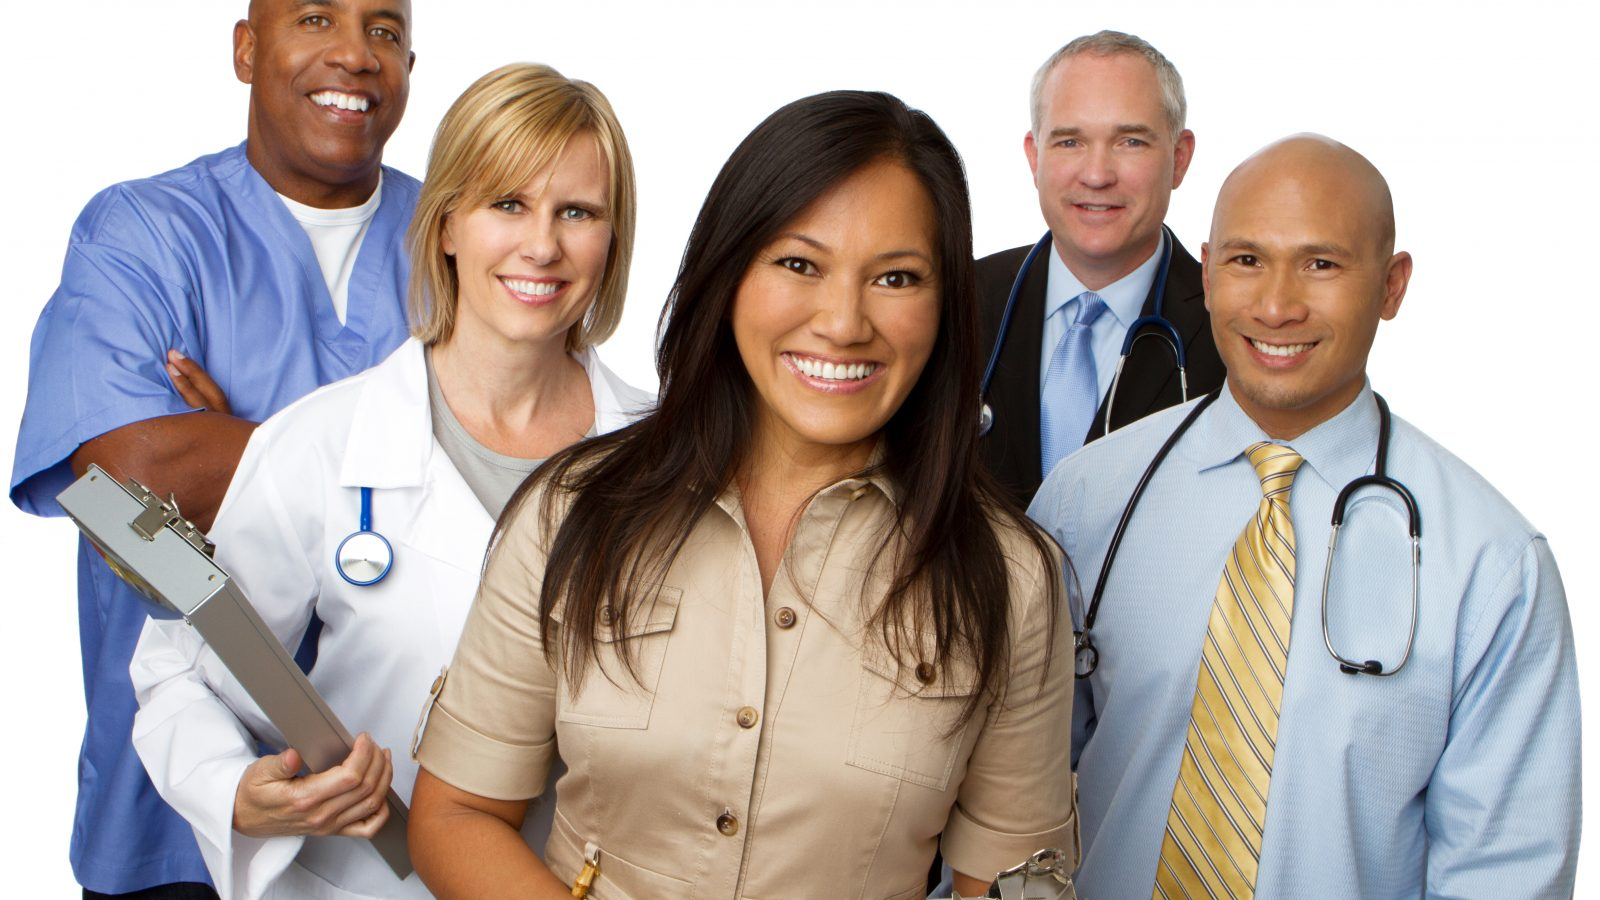 Group of smiling Hospital Professionals